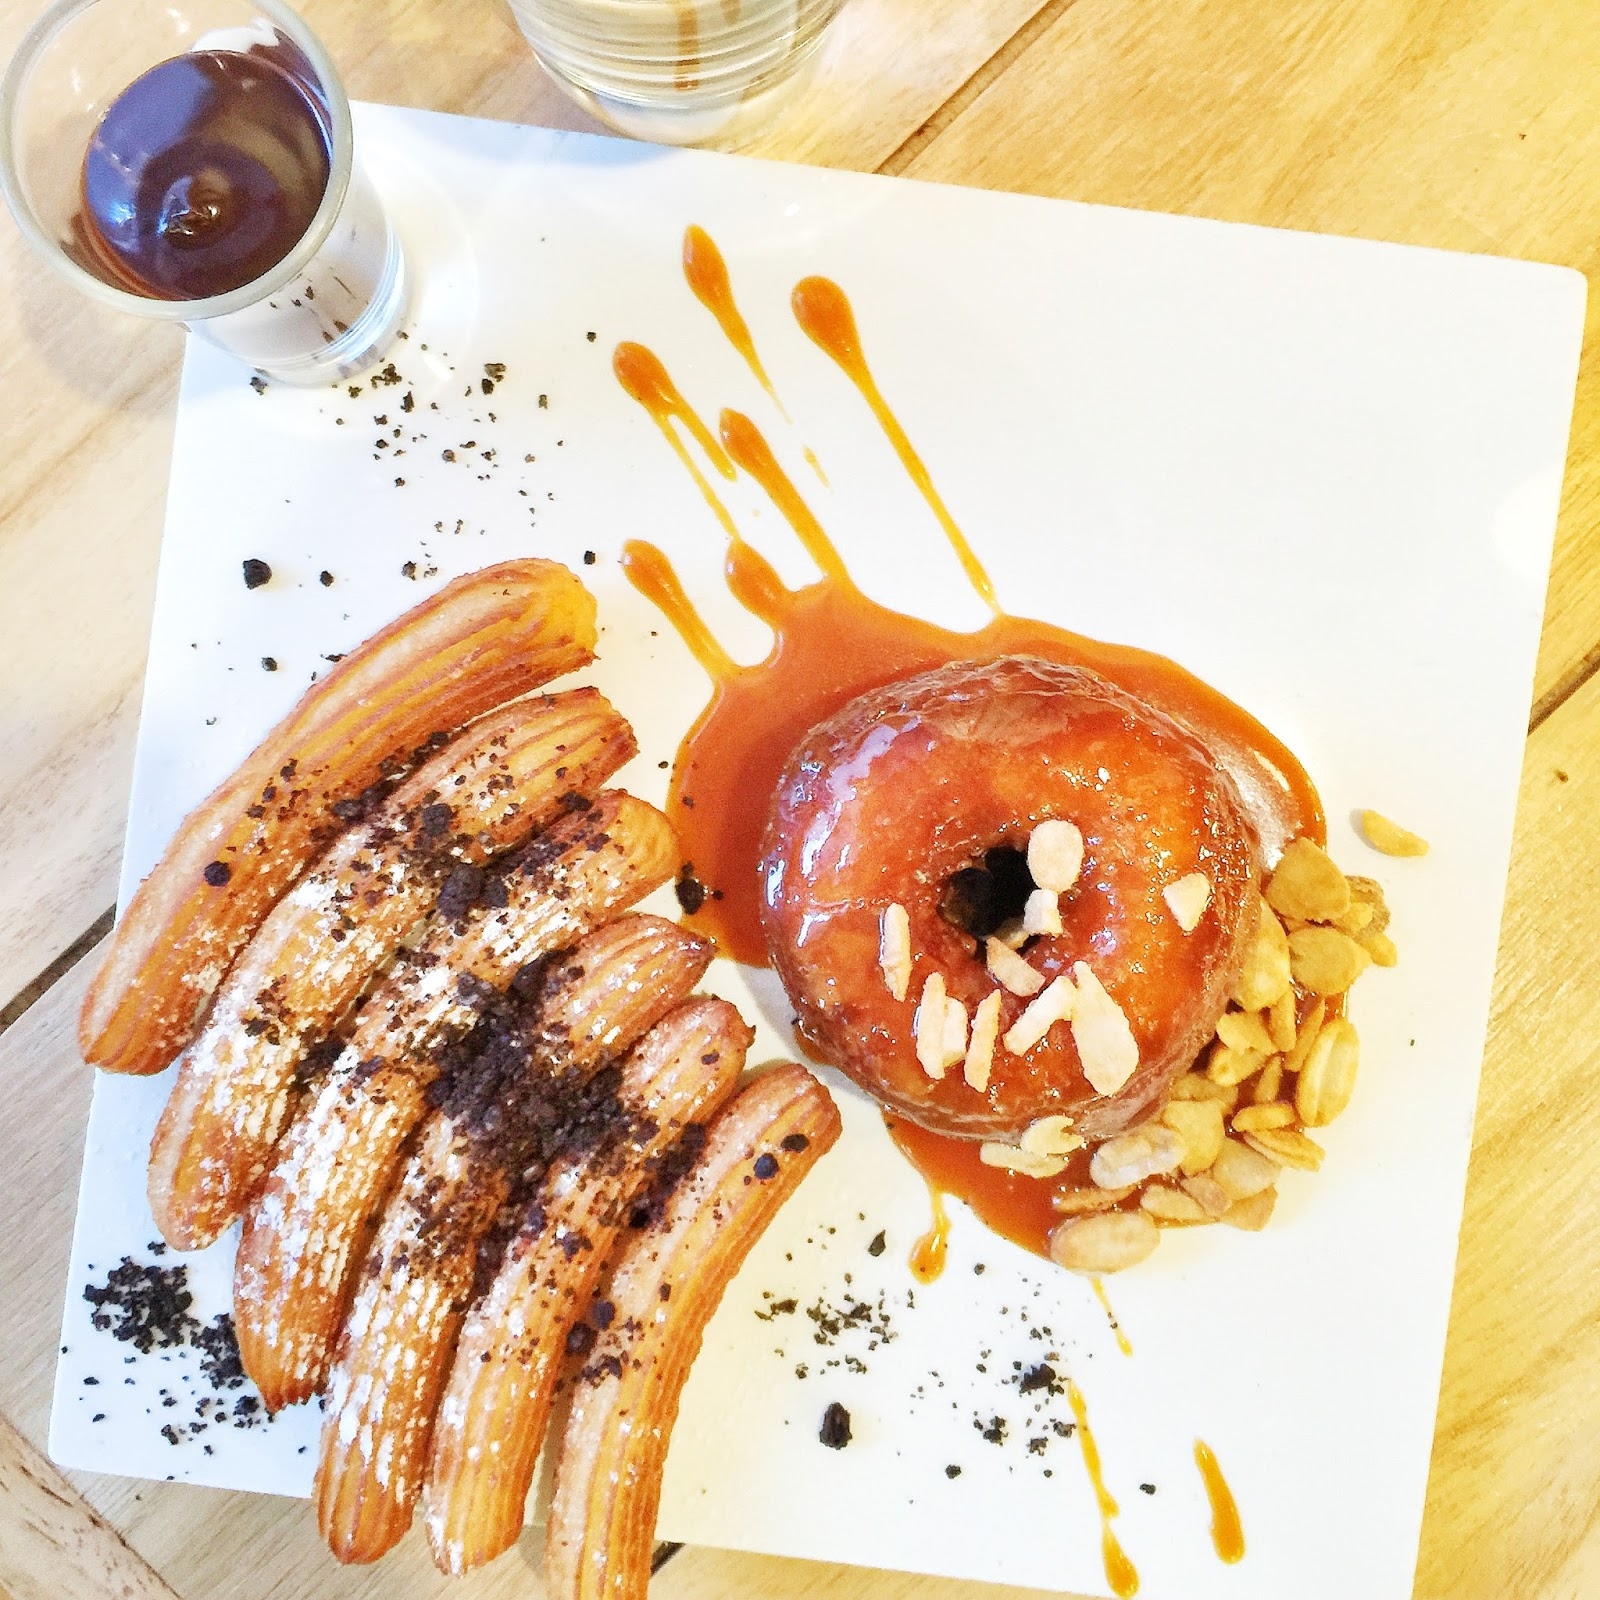 Penang: The Alley Cafe - Cronut and Churros